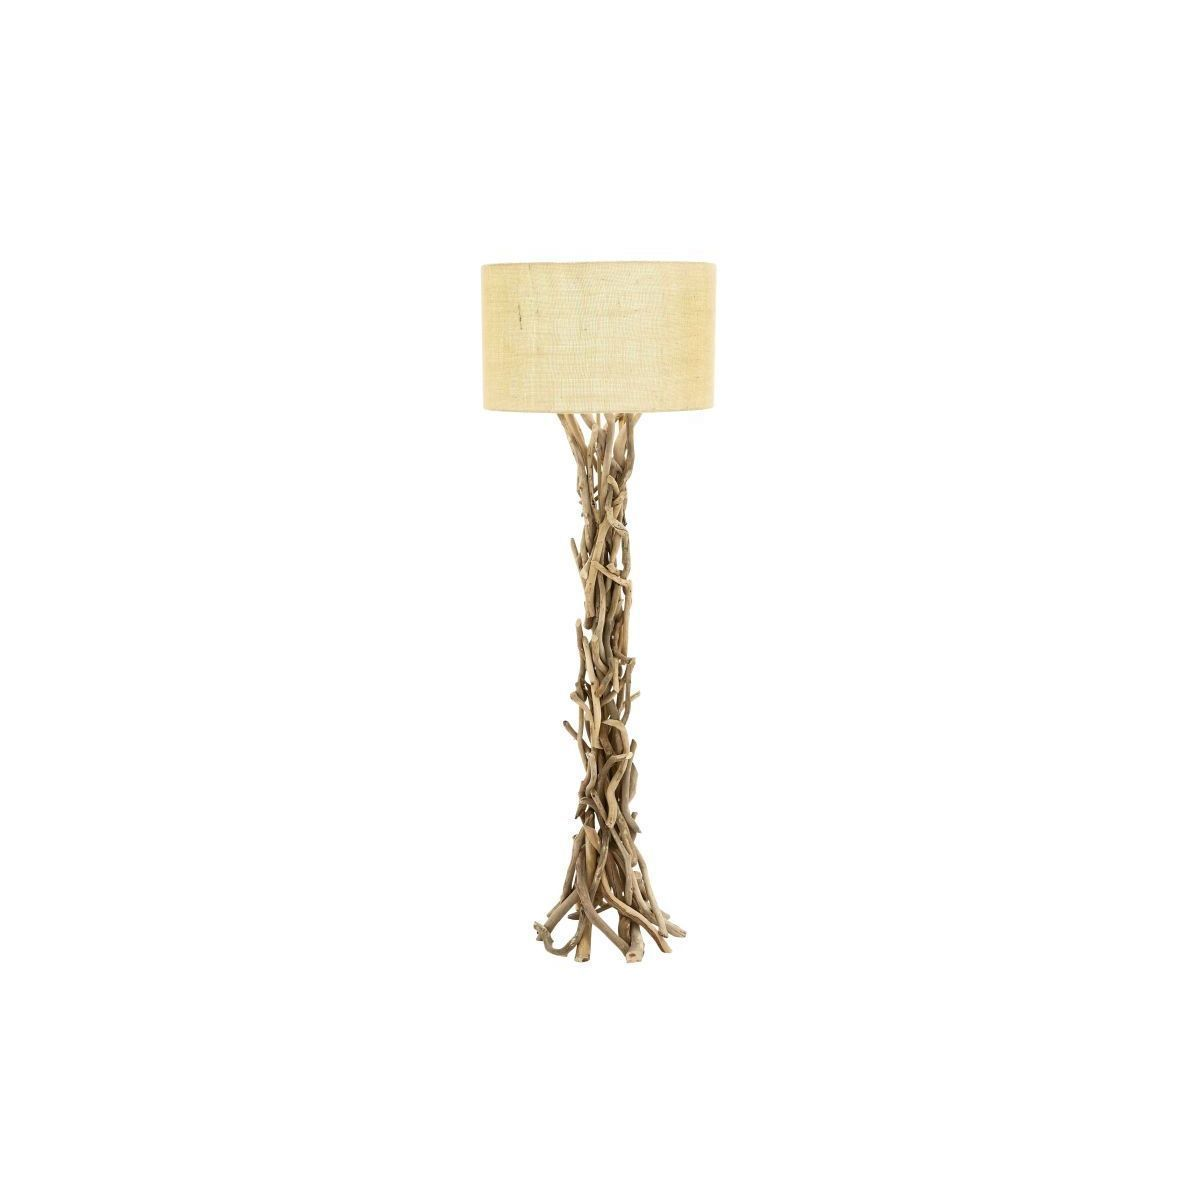 uttermost f width threshold sharpen preserve floor driftwood trim item percentpadding furniture down lamps b lamp howell products